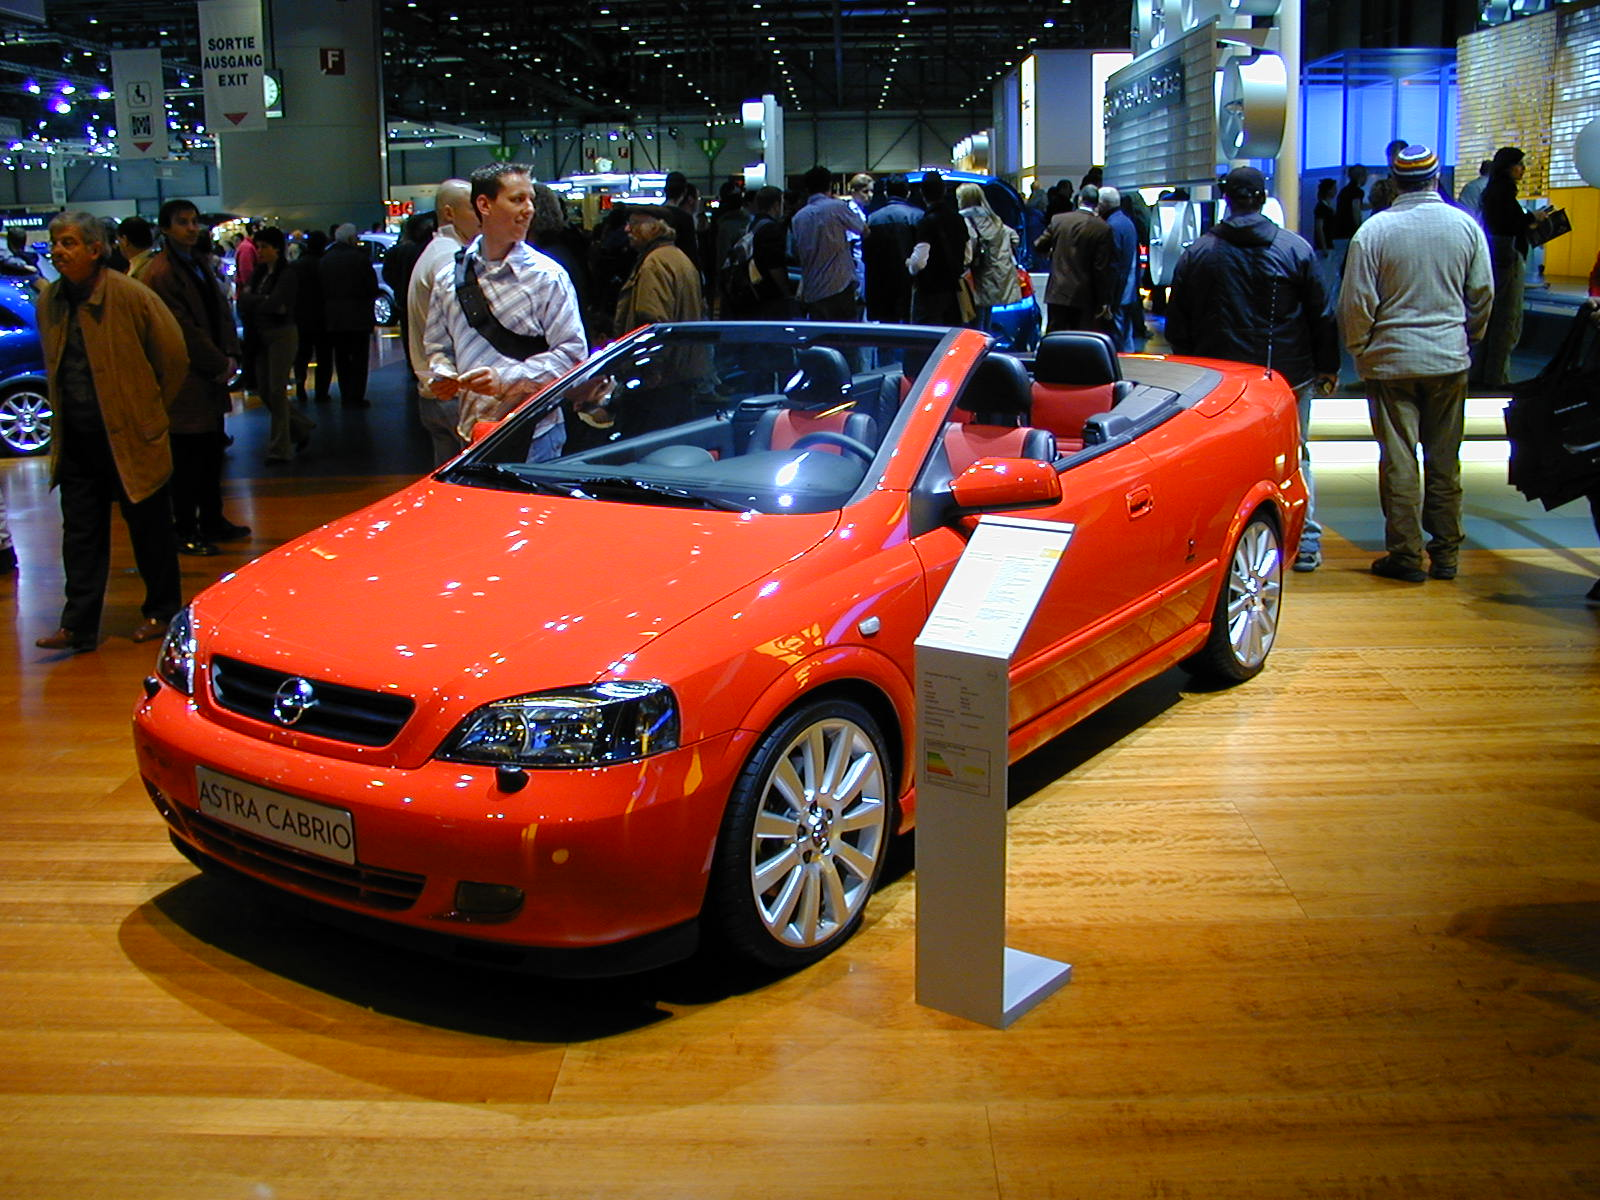 bestand sag2004 028 opel astra cabrio jpg wikipedia. Black Bedroom Furniture Sets. Home Design Ideas